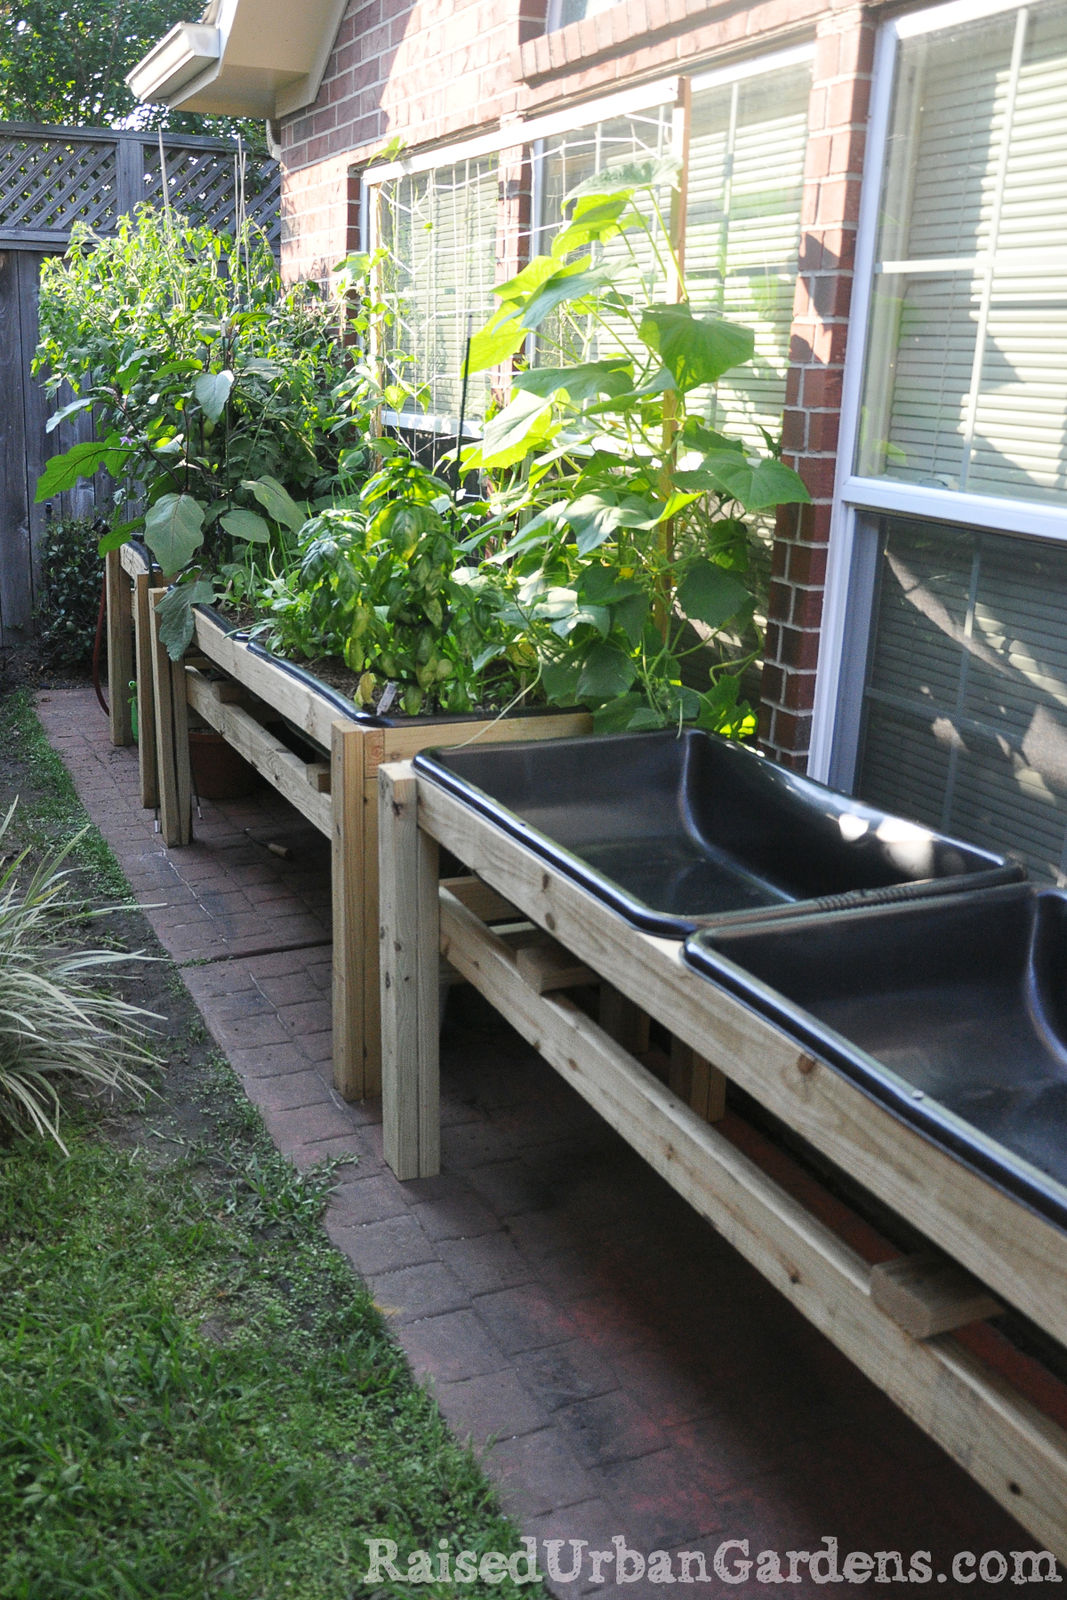 A Raised Garden For A Friend Small Spaces Work Raised Urban Gardens